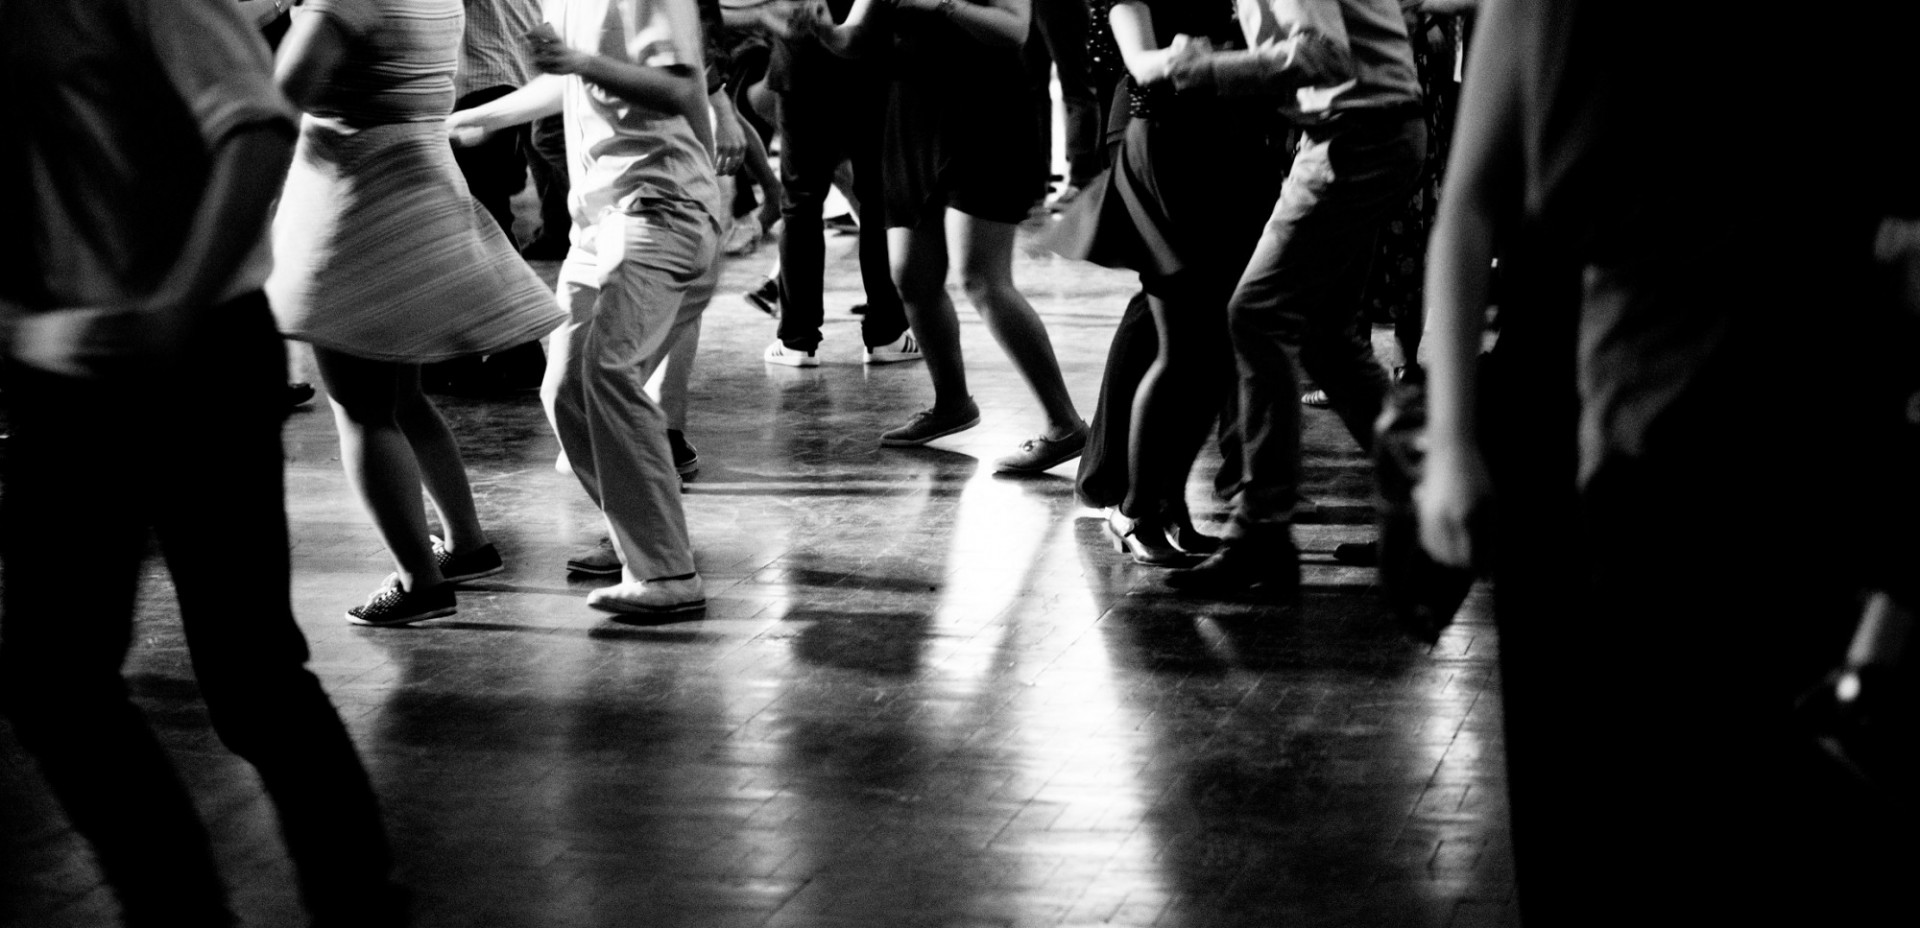 black and white image of people dancing on a dancefloor